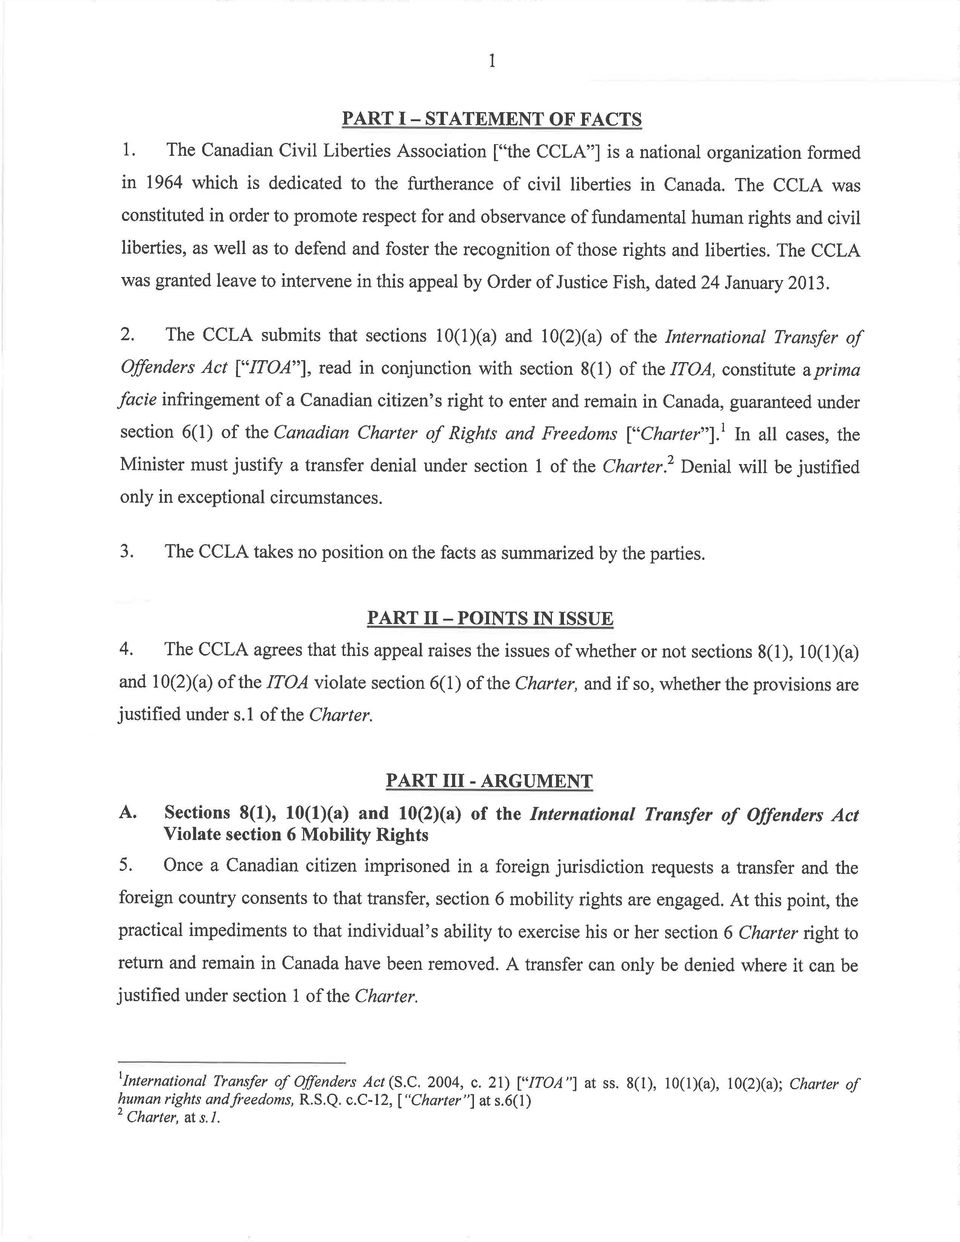 The CCLA was granted leave to intervene in this appeal by Order of Justice Fish, dated 24